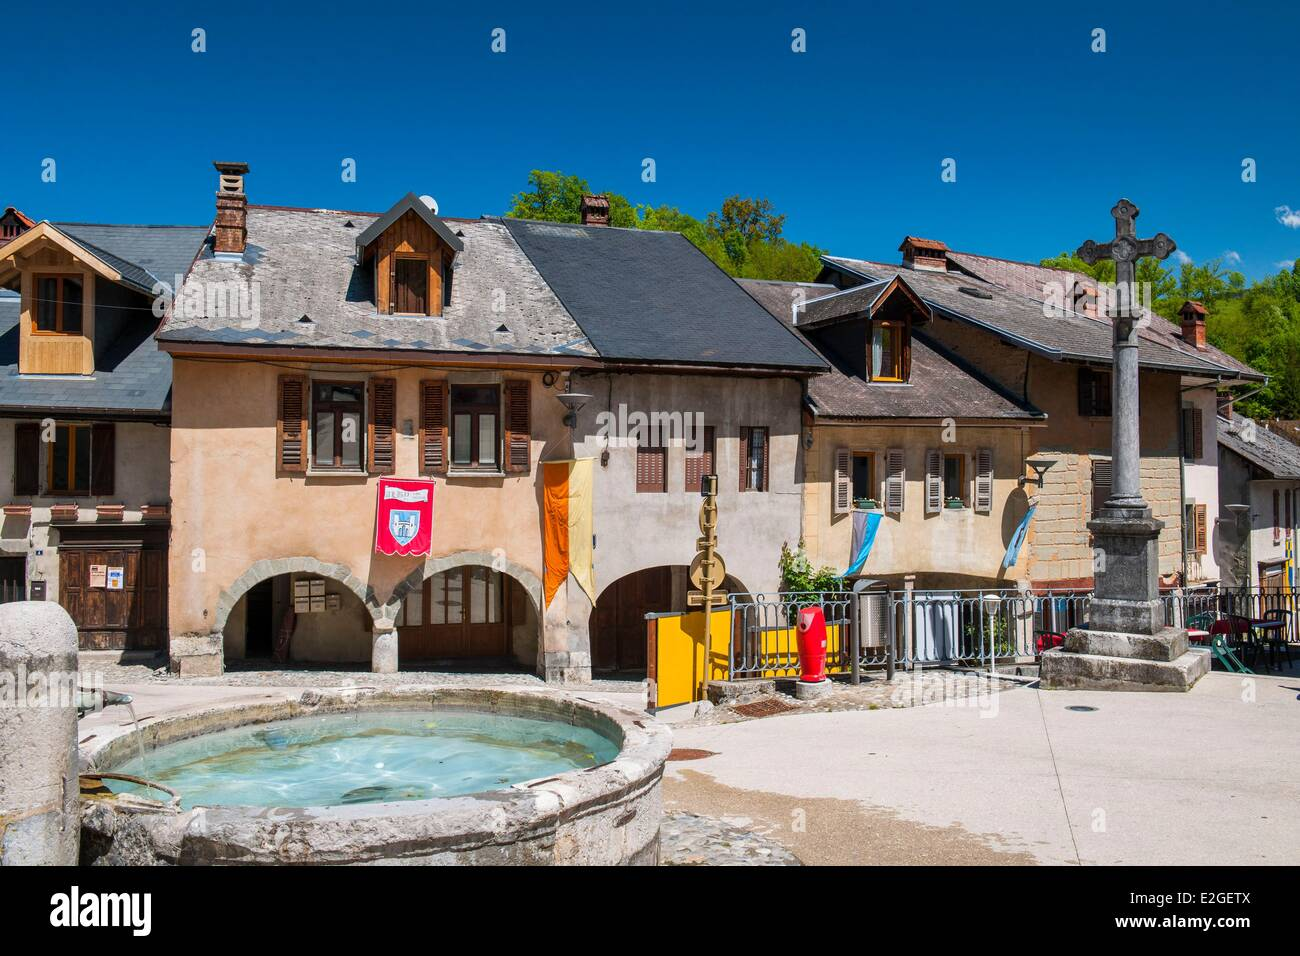 France Haute Savoie Alby sur Cheran is well known for its old town with its arcaded houses - Stock Image